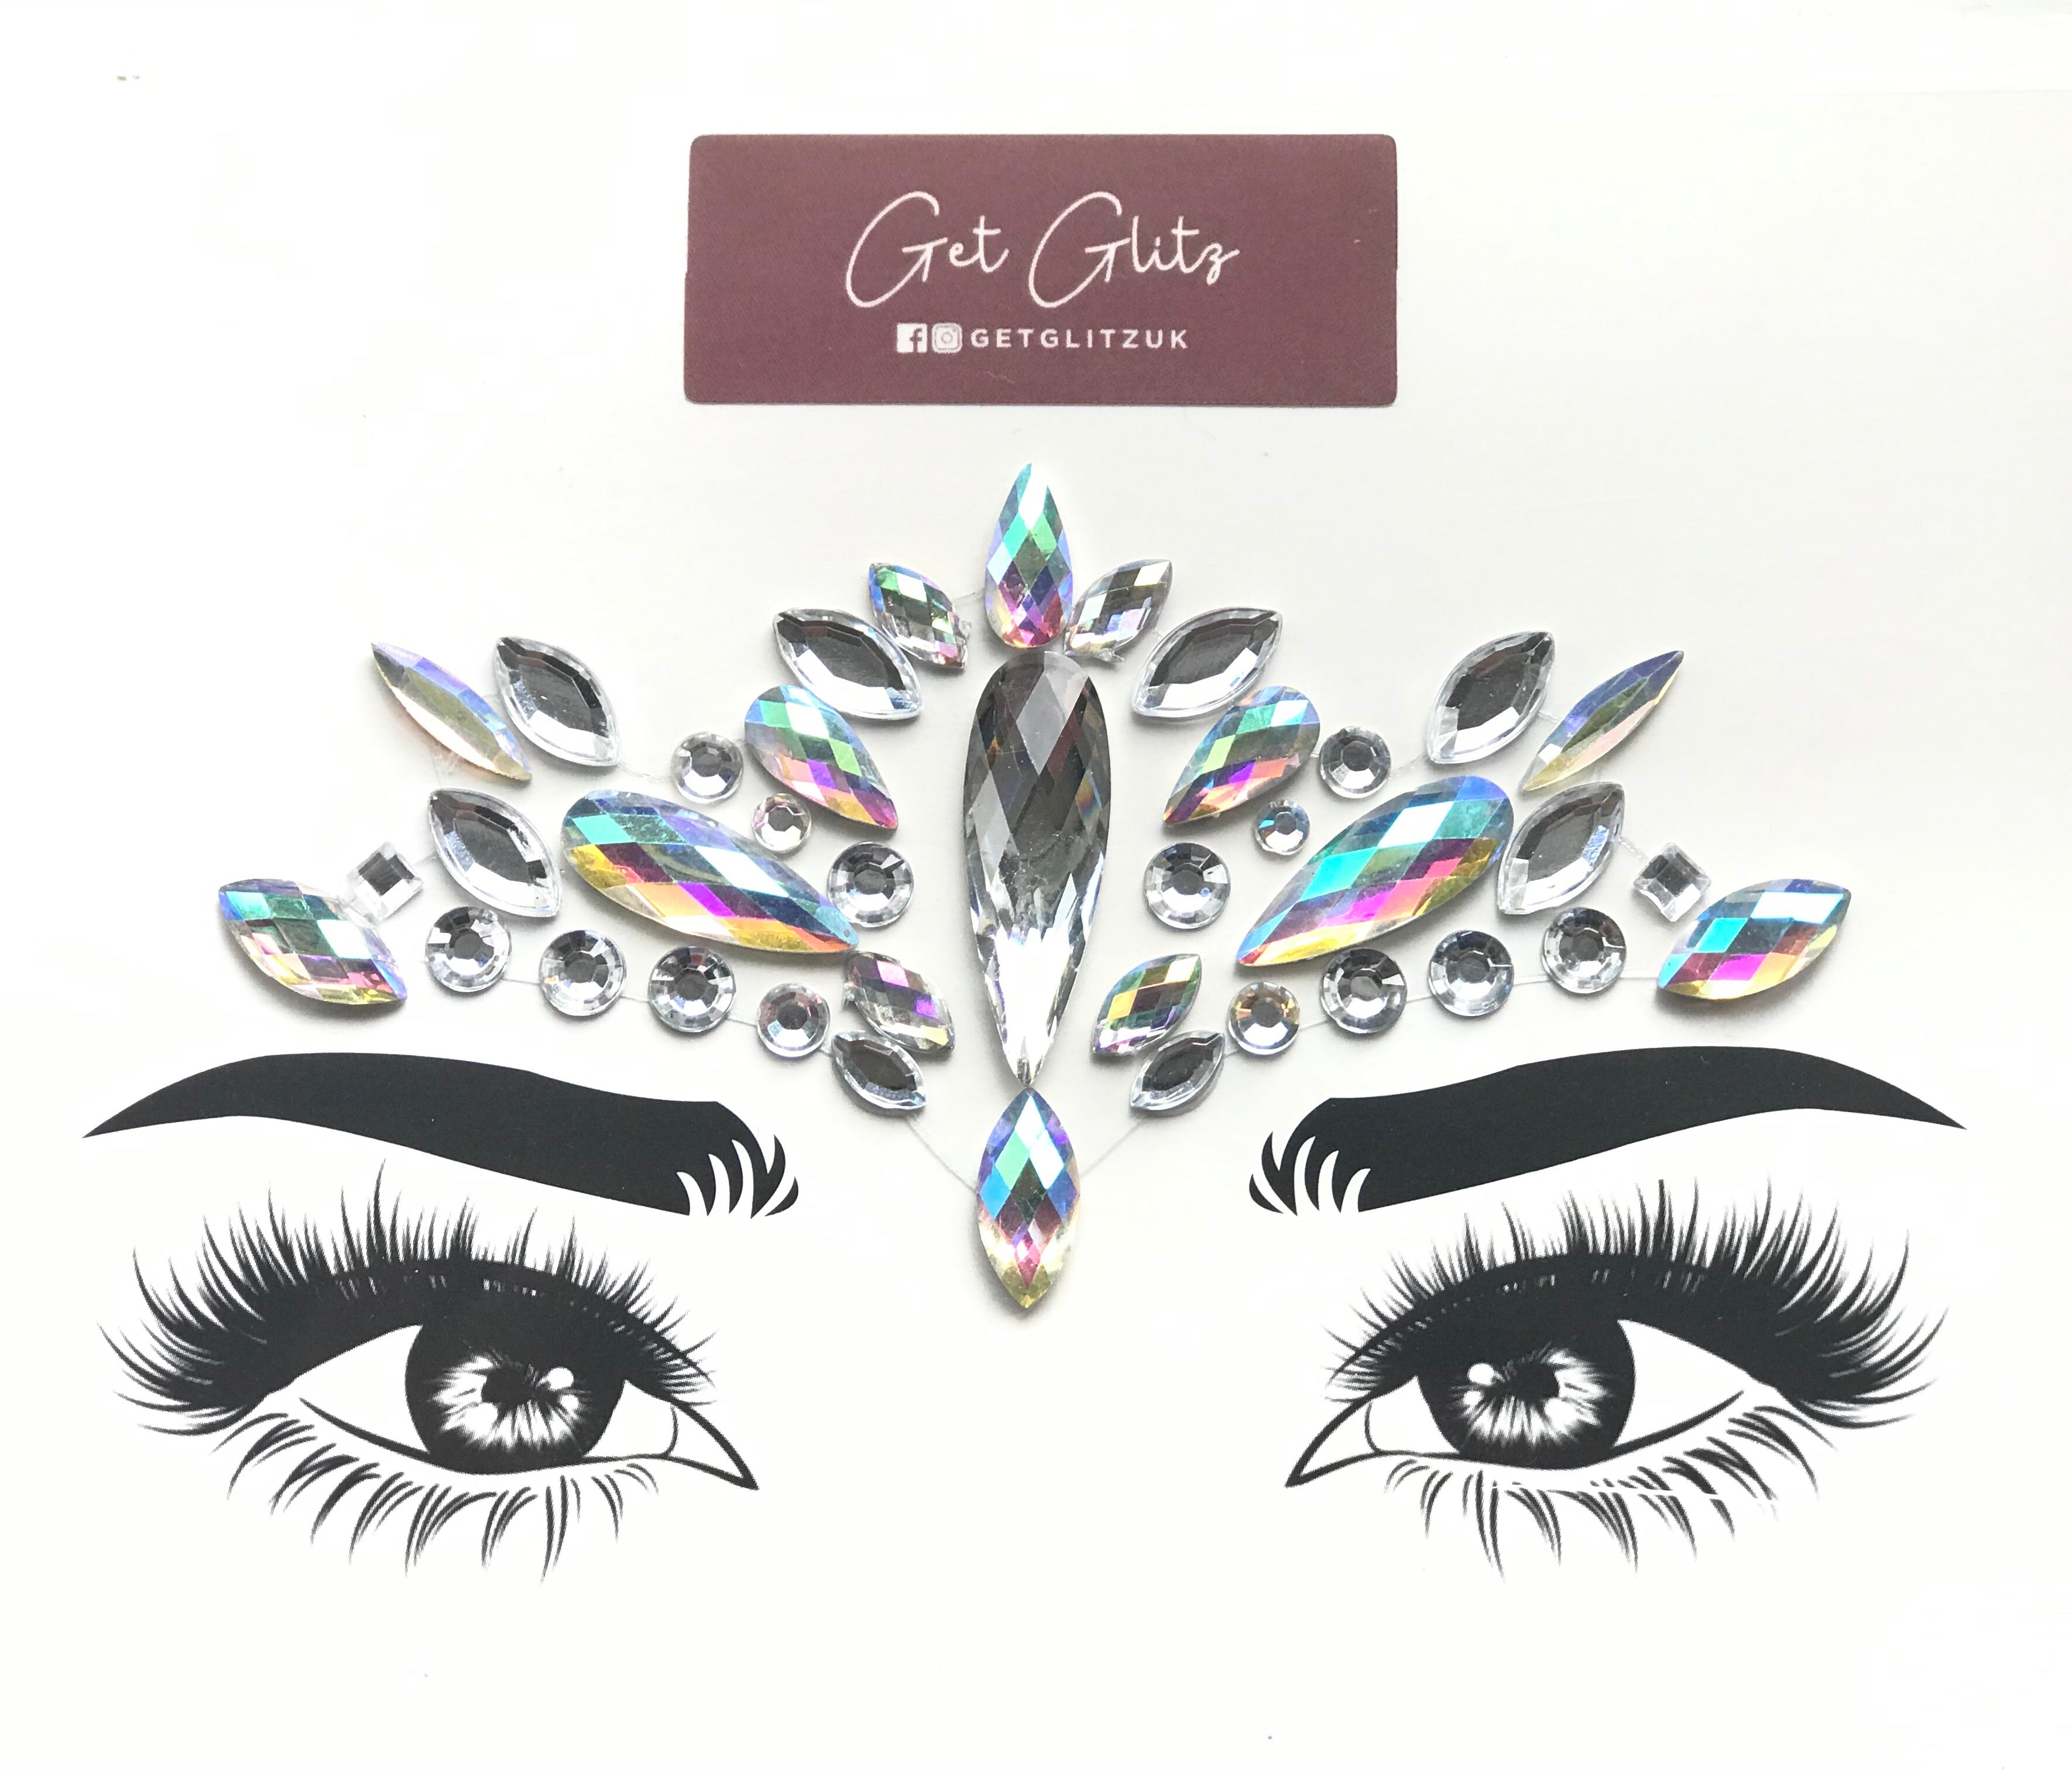 Mother of crowns - Chunky Glitter UK